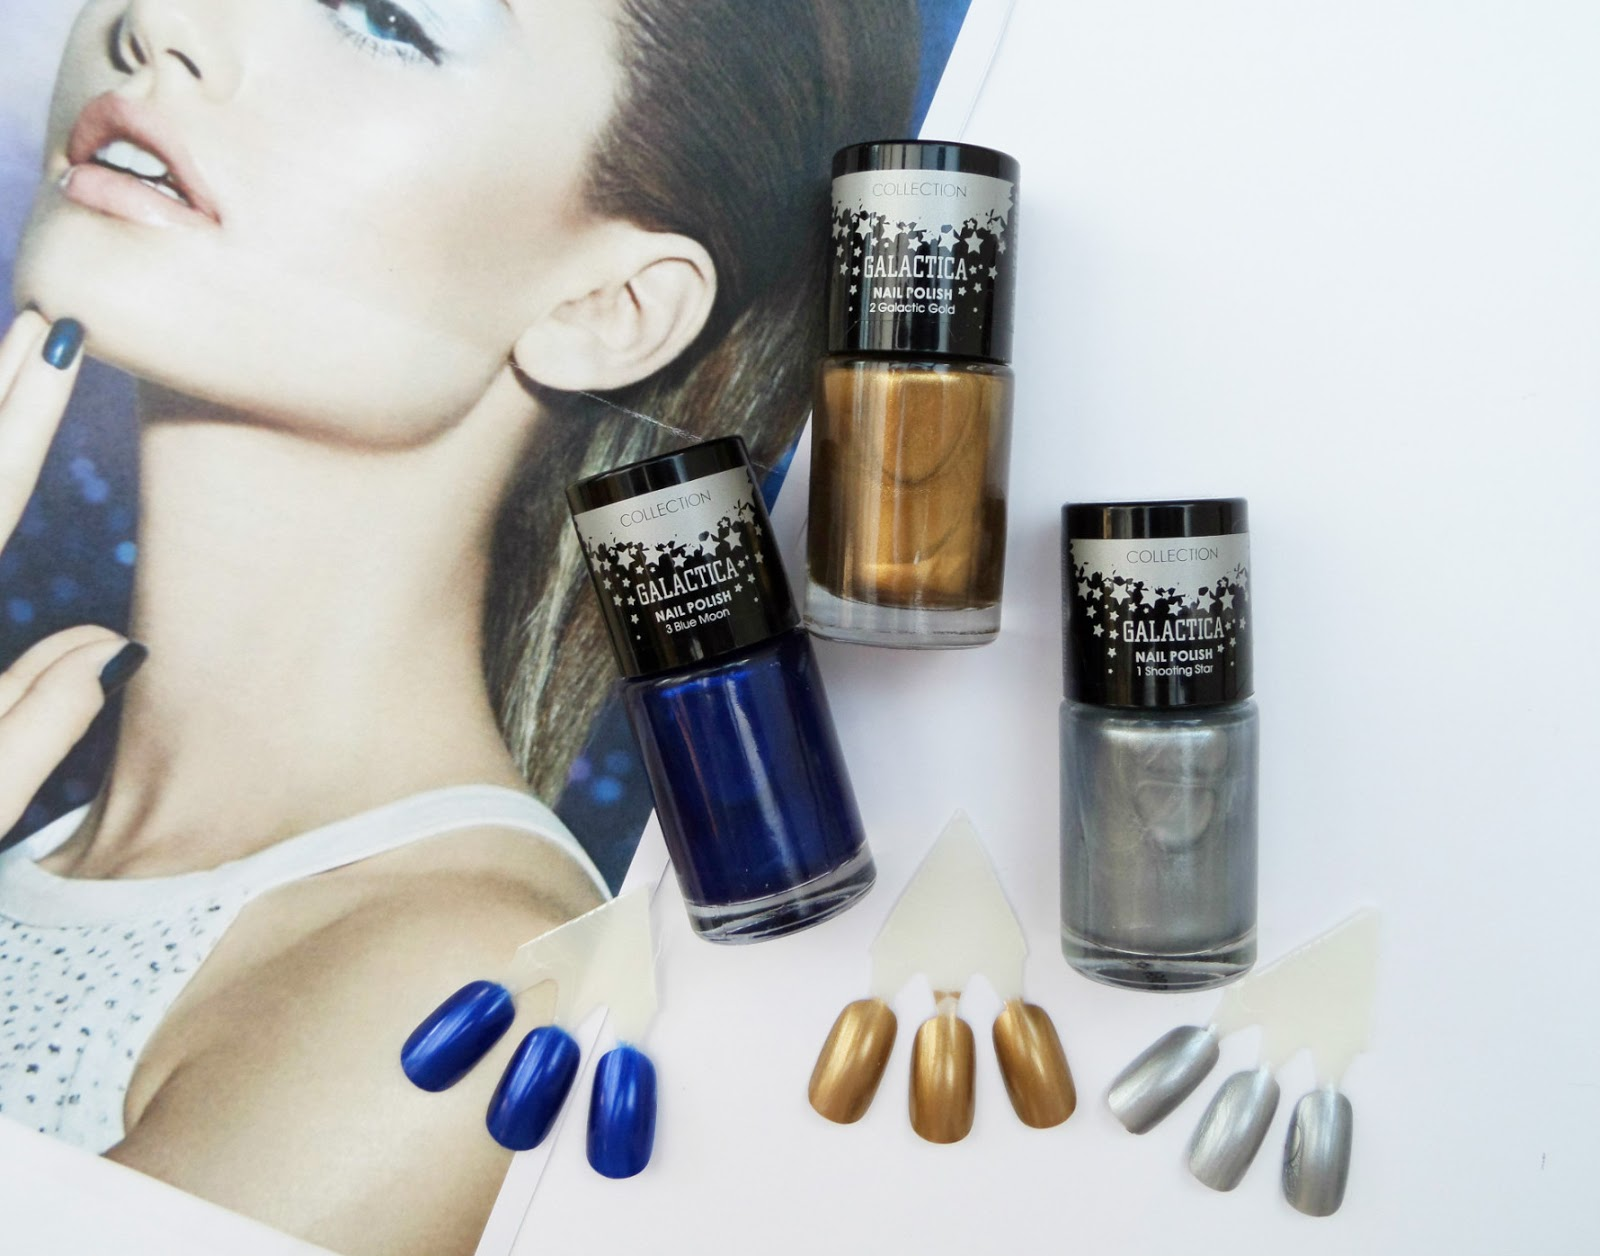 Collection Cosmetics Galactica Range Nail Polishes